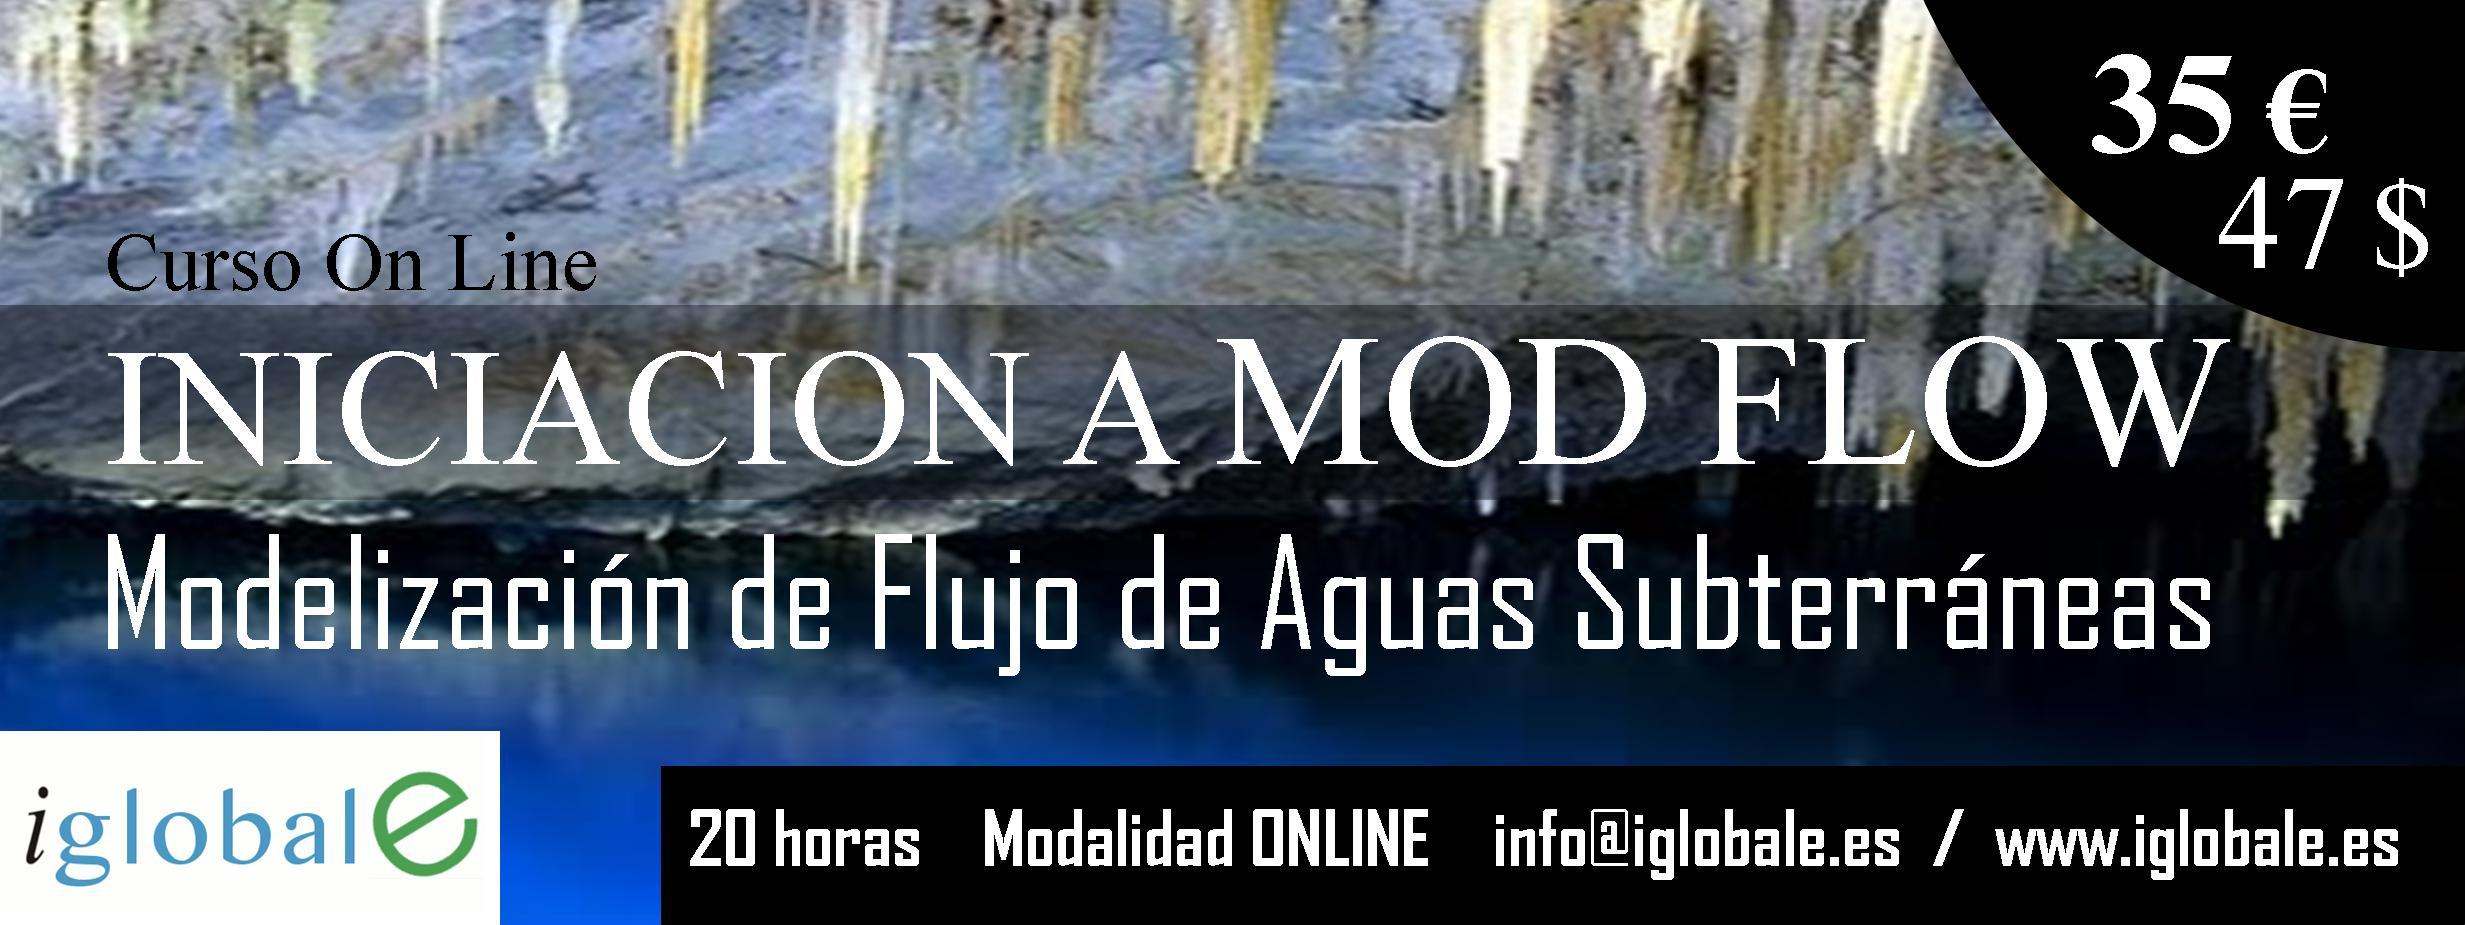 DIPTICO MODFLOW FACEBOOK